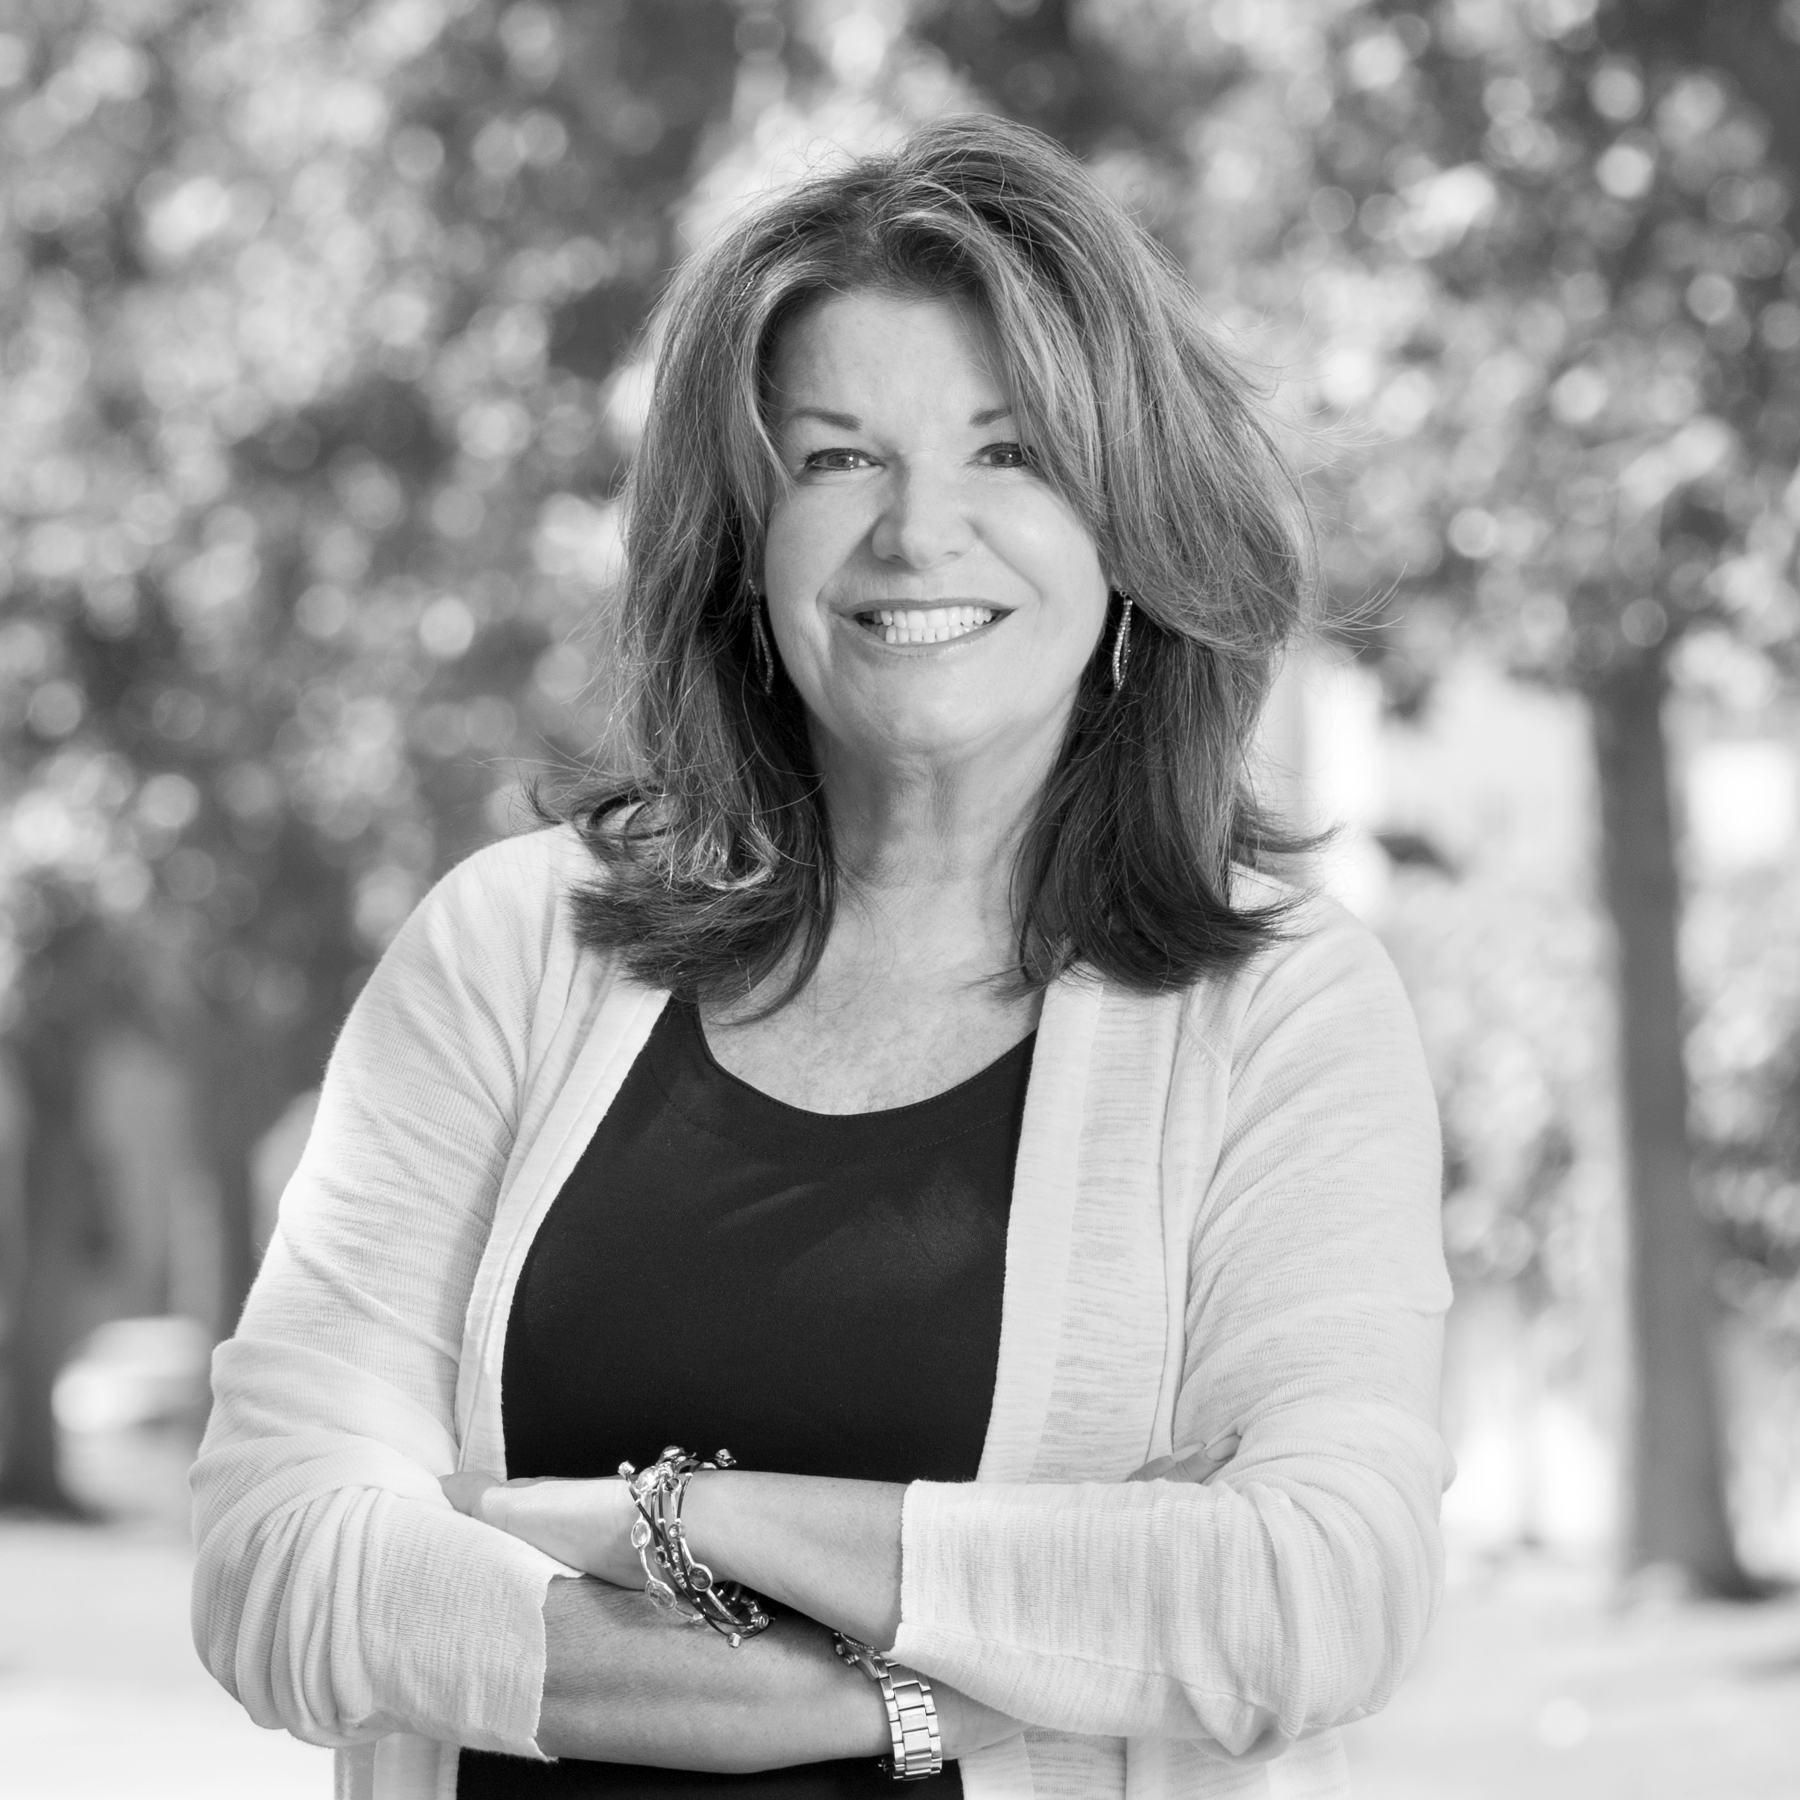 K. Elizabeth Dunn brings over 30 years of experience as a seasoned counselor and litigator to the firm's individual and business clients